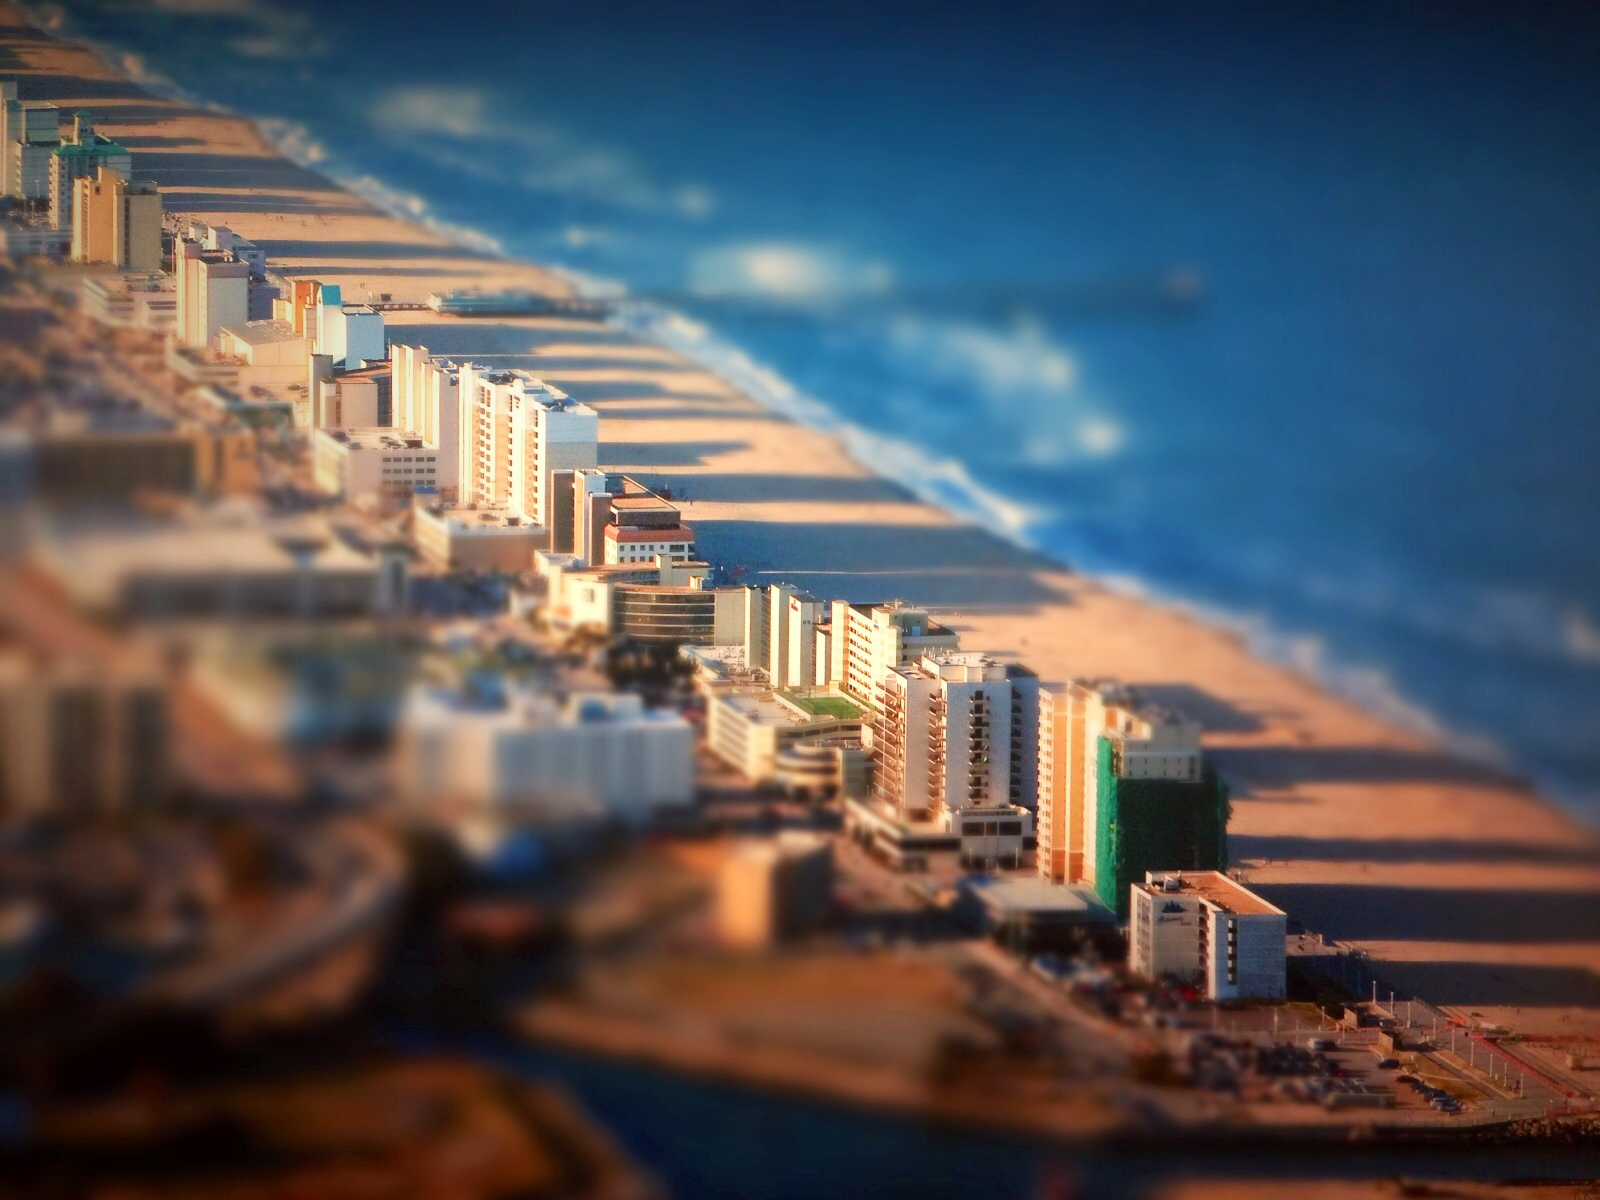 The Virginia Beach resort strip is pictured using the Tilt/Shift Gen App for the iPhone.